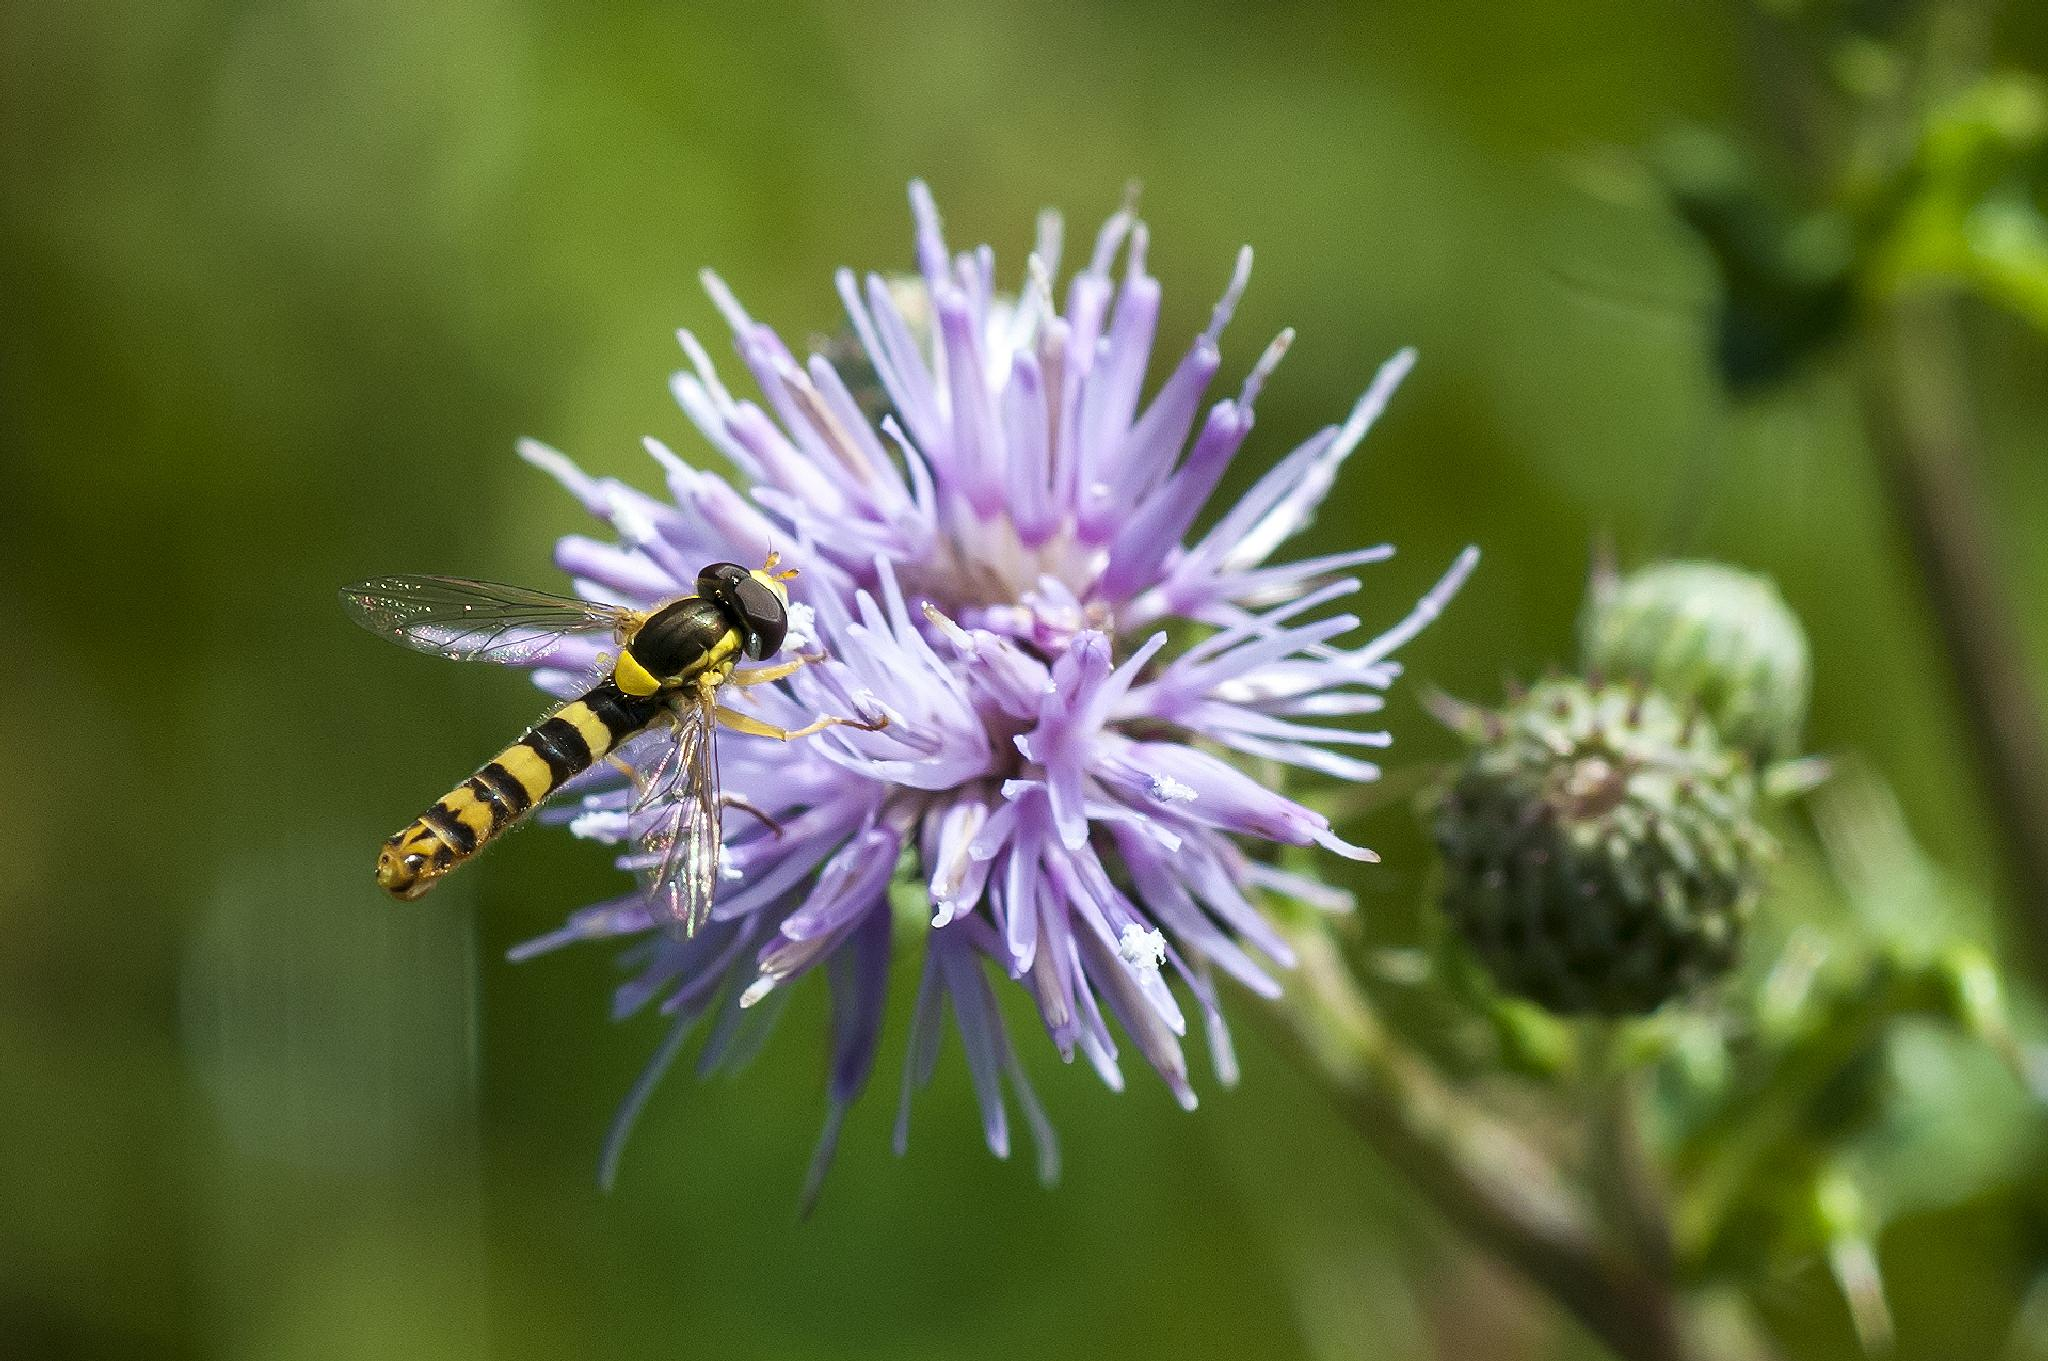 Hoverfly by cakey.white